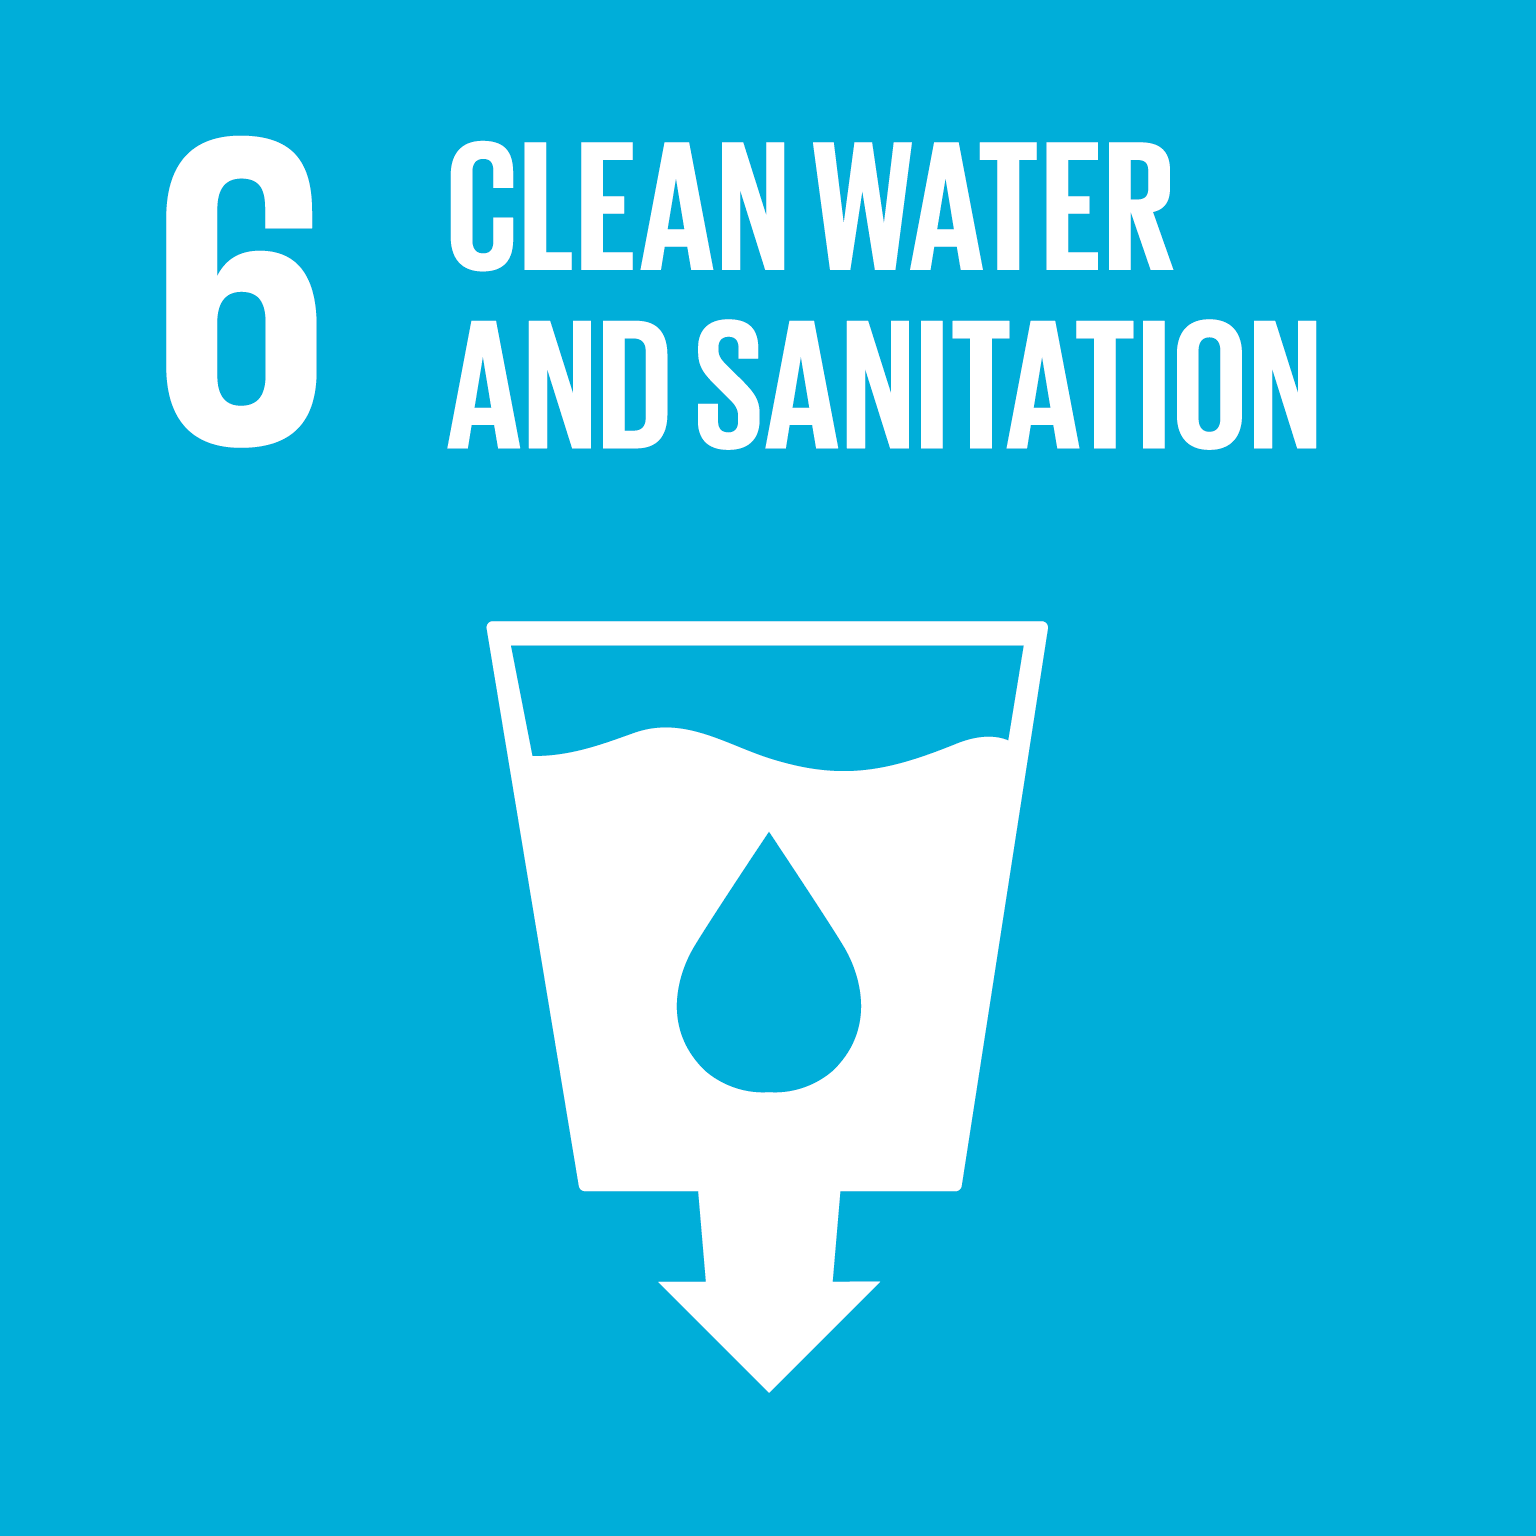 Clean Water and Sanitation (6)